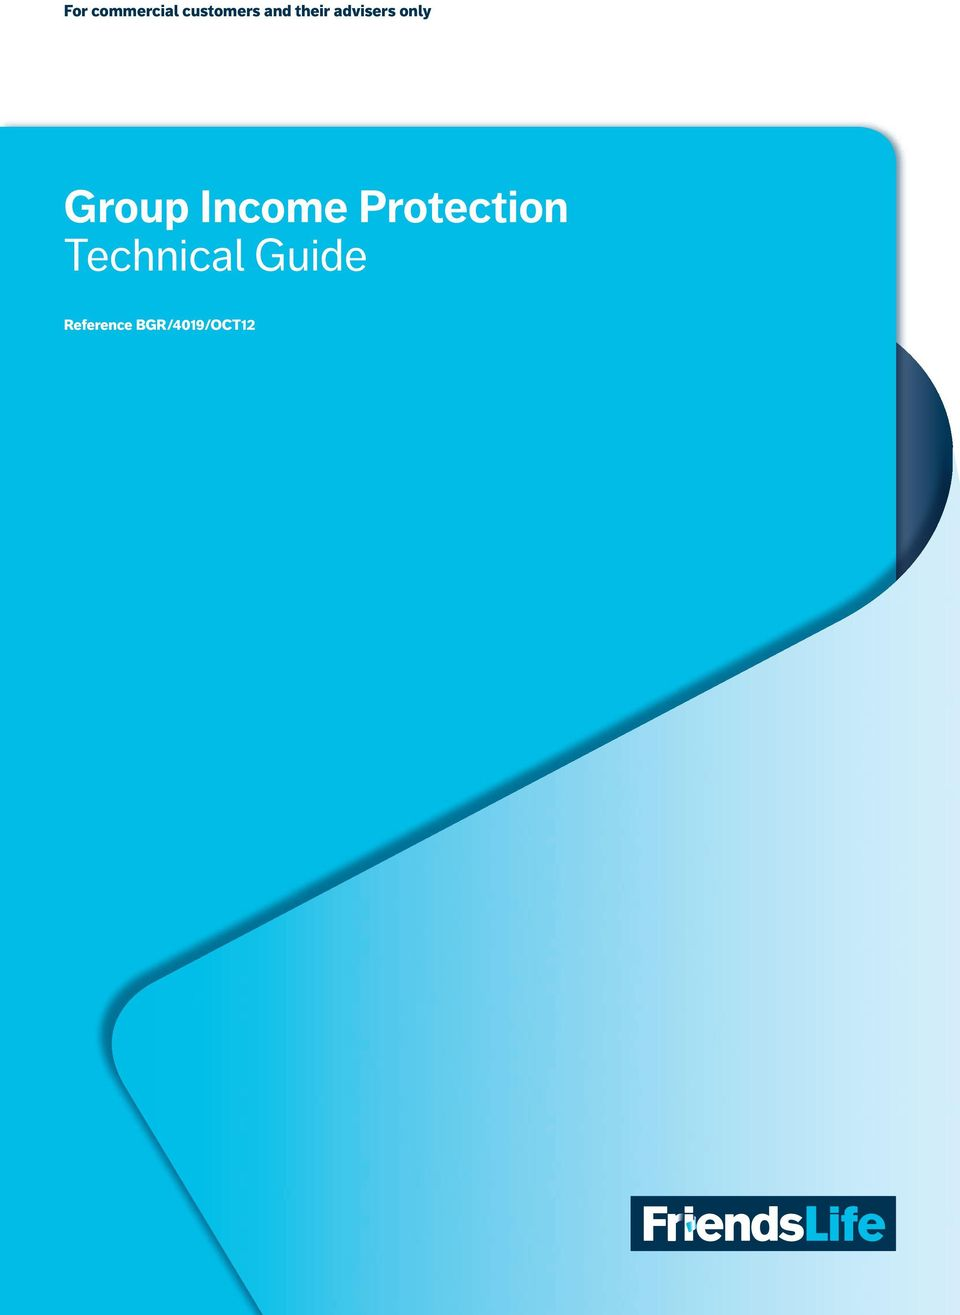 Income Protection Technical